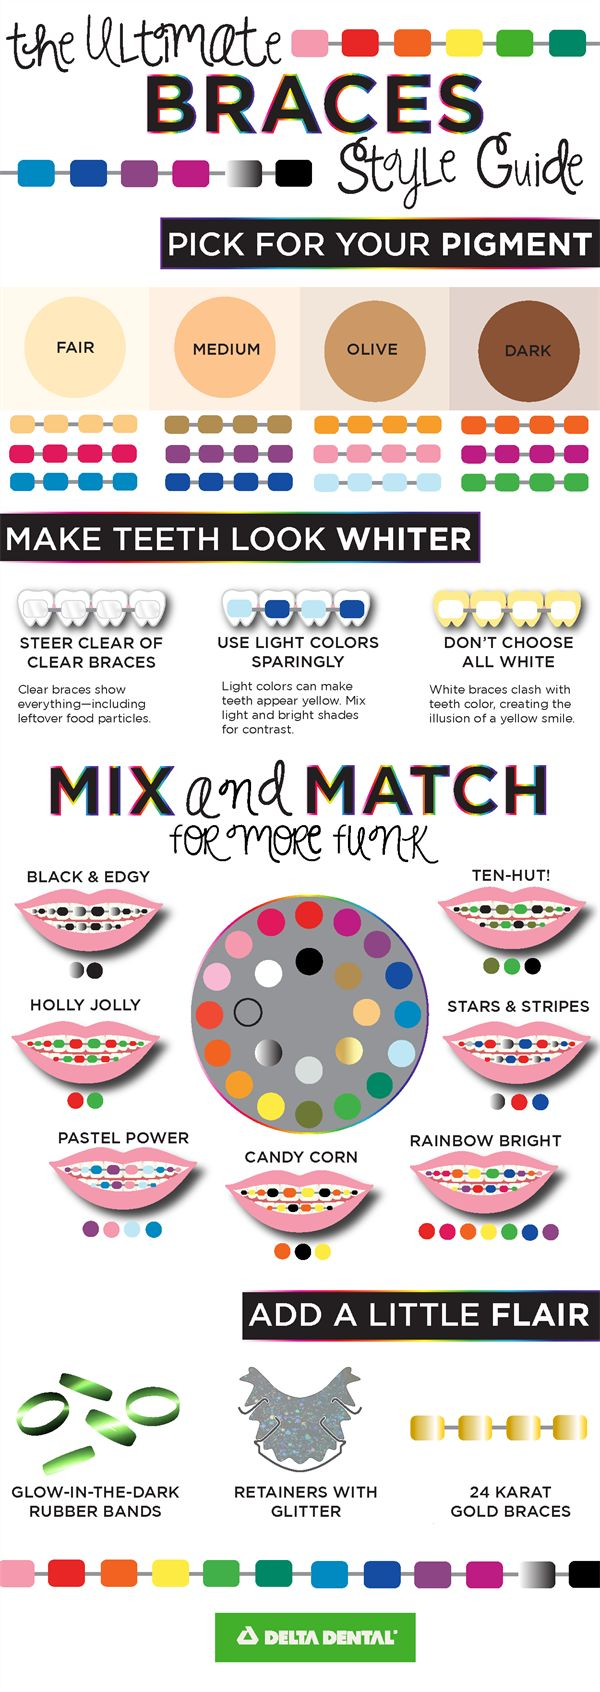 The Ultimate Braces Style Guide